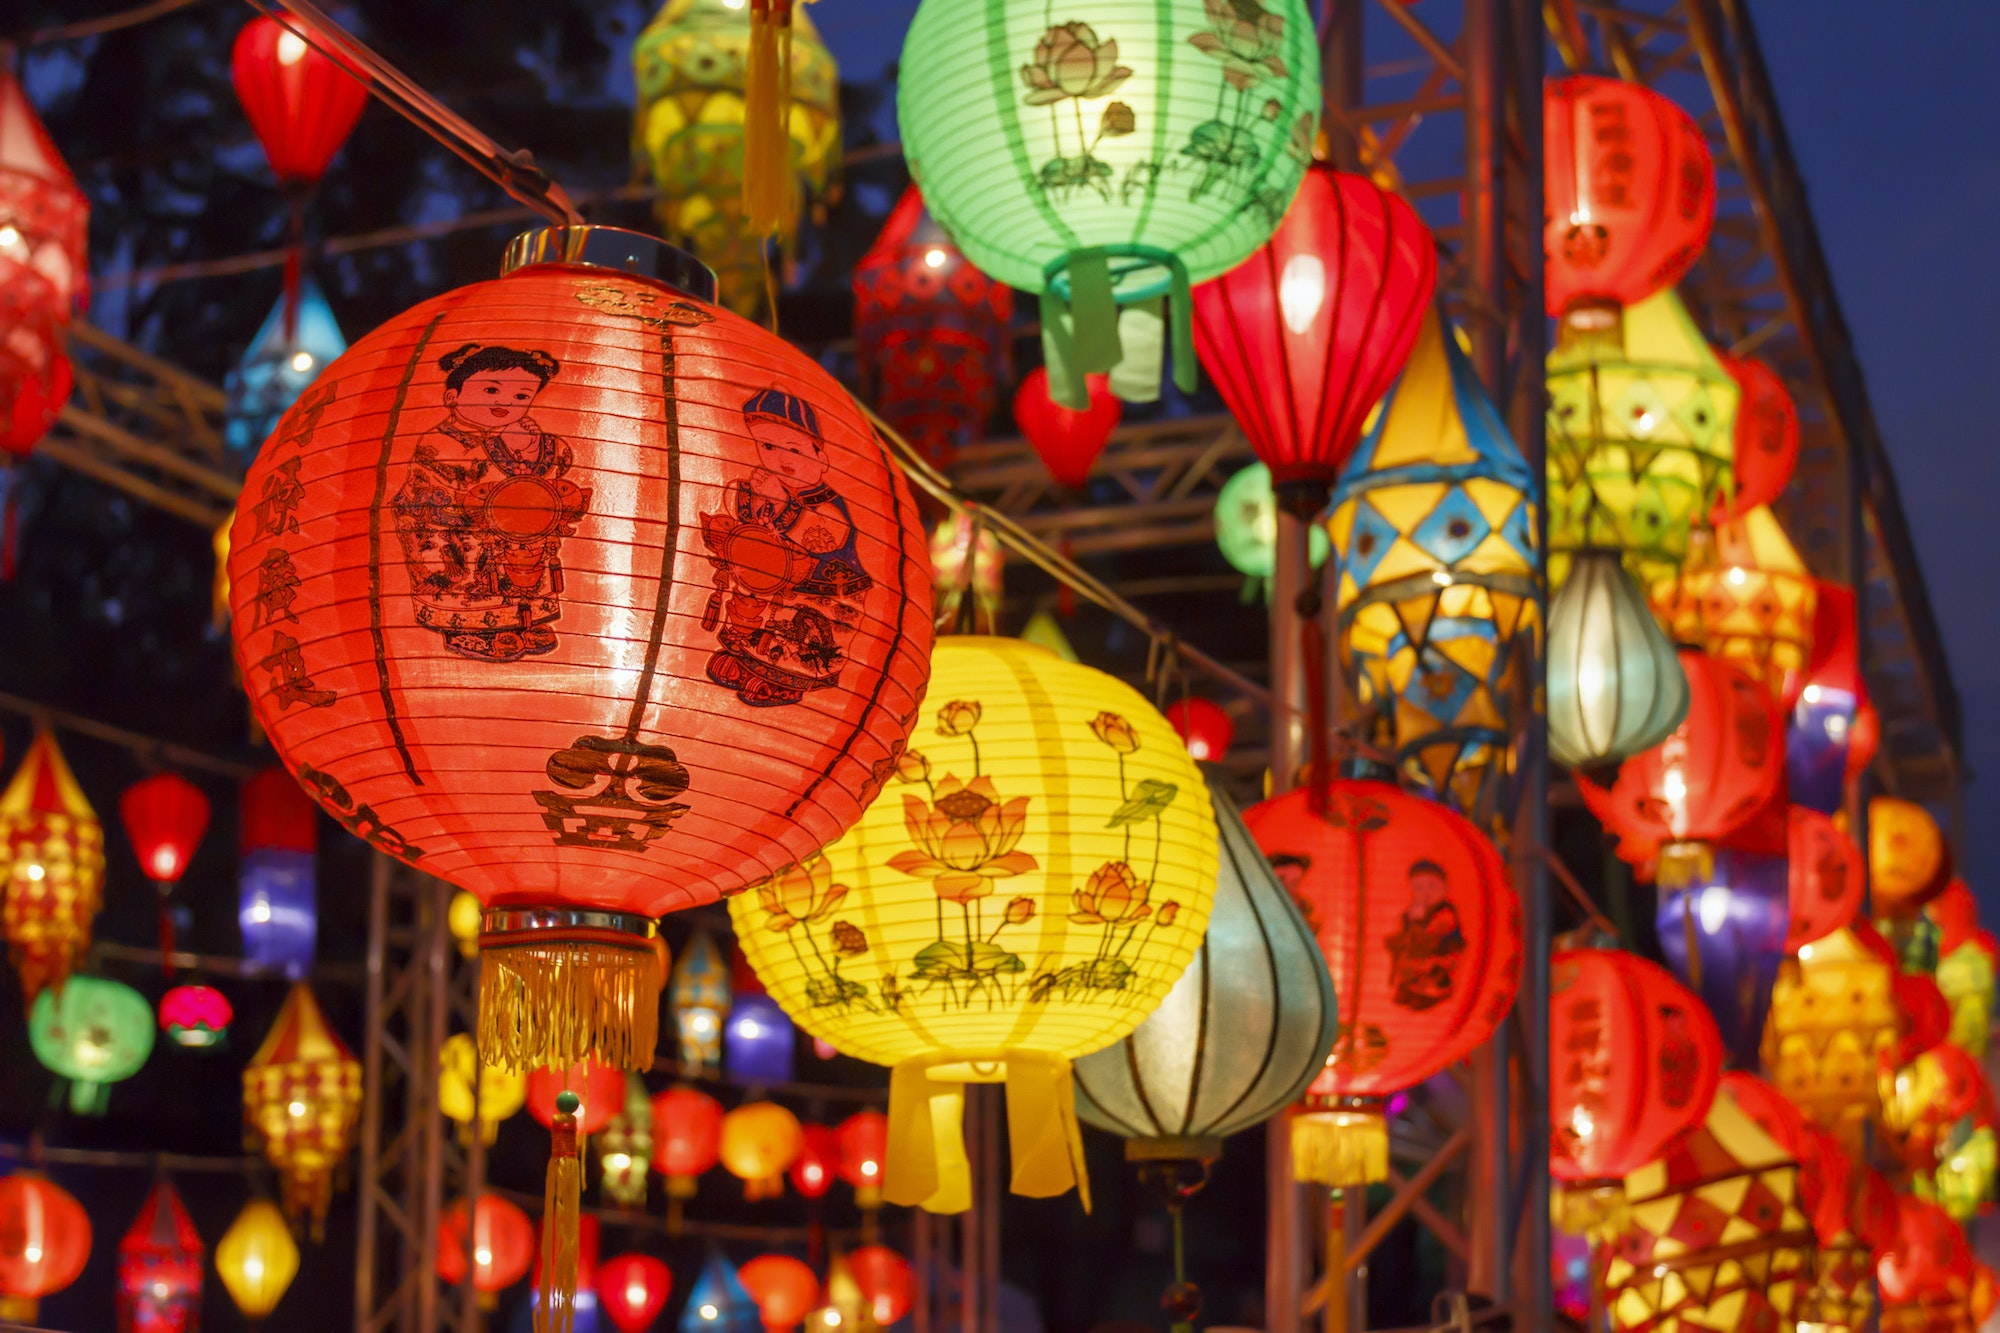 Chinese lanterns are traditionally red, as the color is believed to symbolize warmth, happiness, and good fortune.